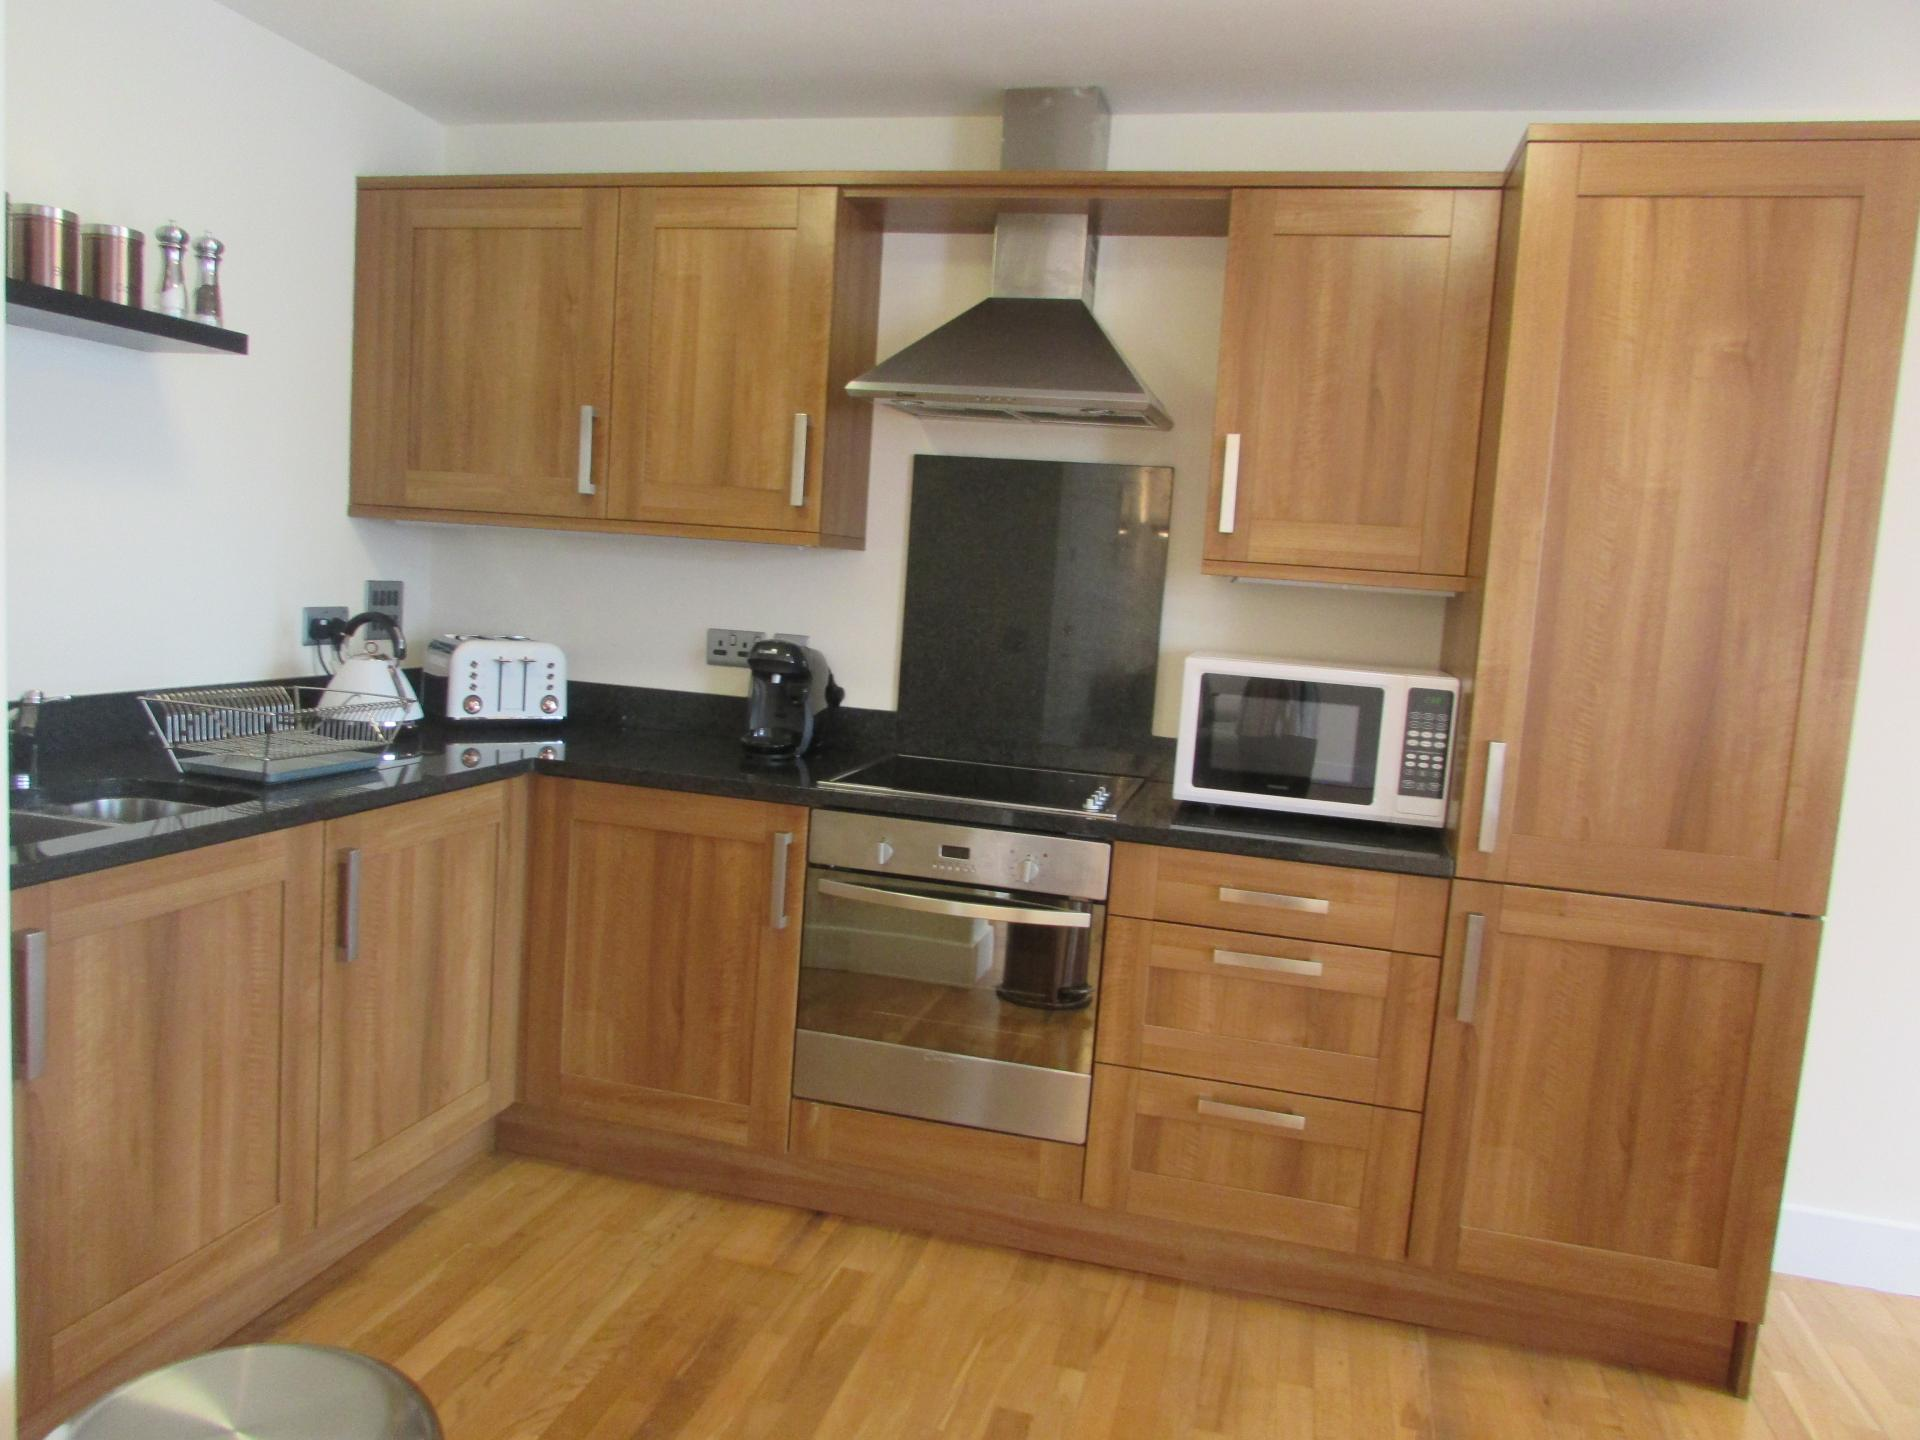 Kitchen at William Yard Apartment, Millbay, Plymouth